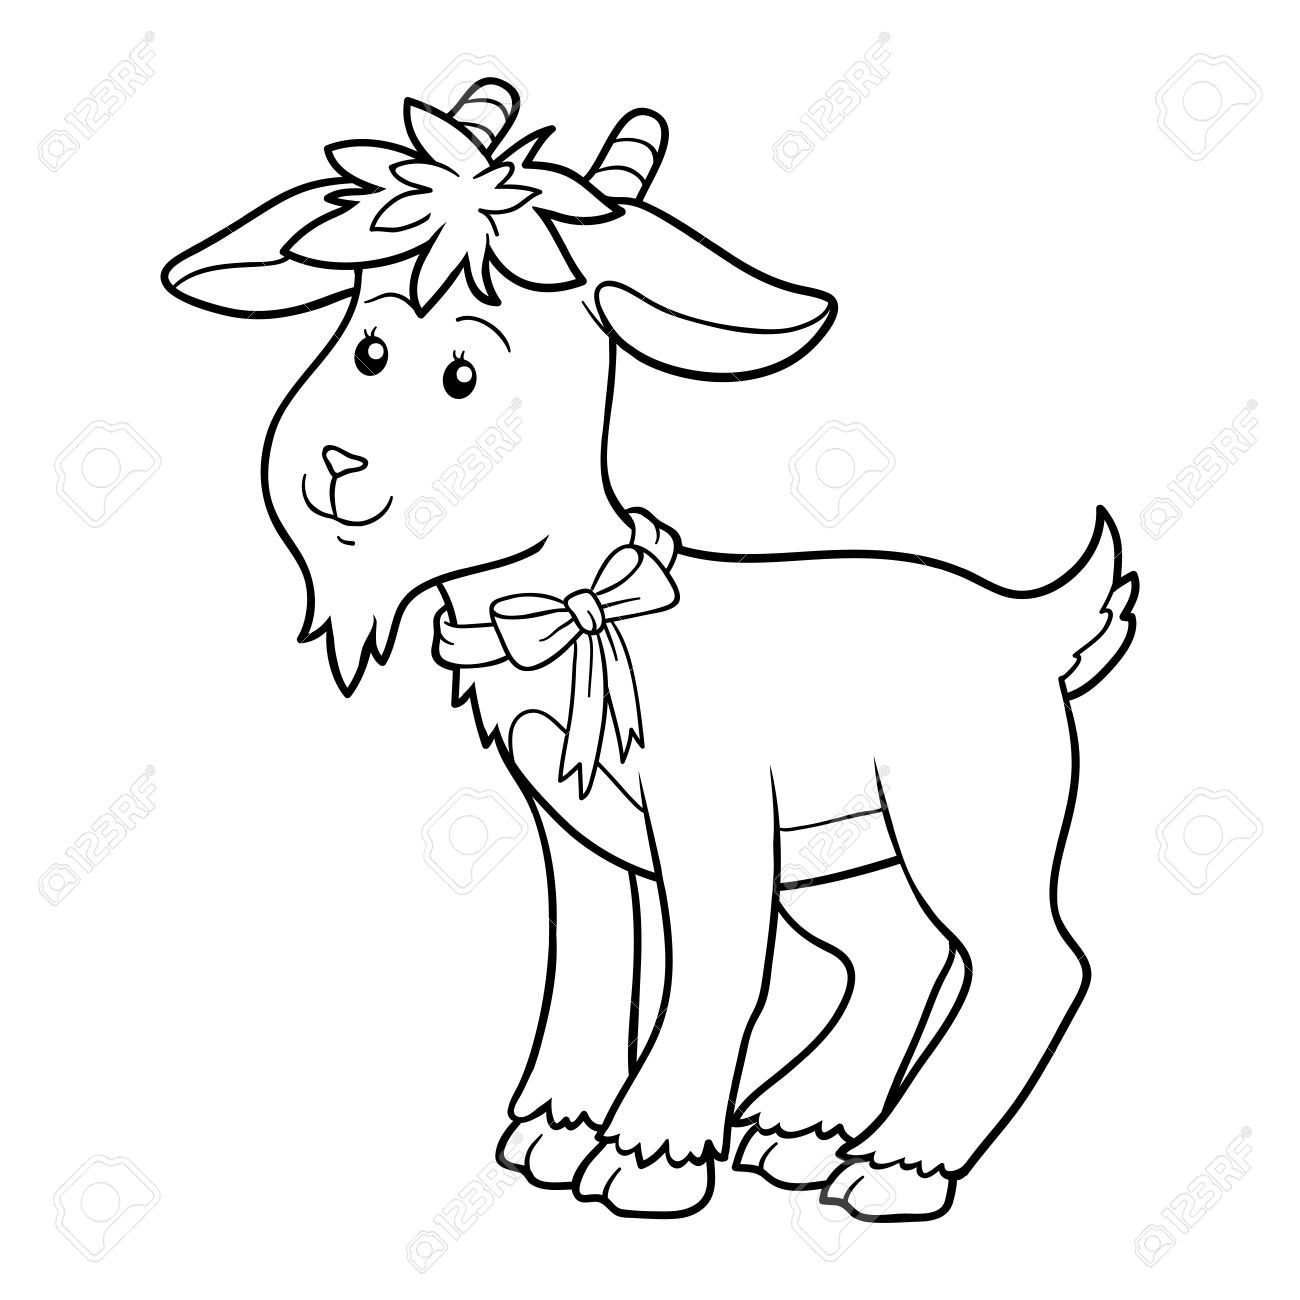 Game For Children Coloring Book Goat Stock Vector